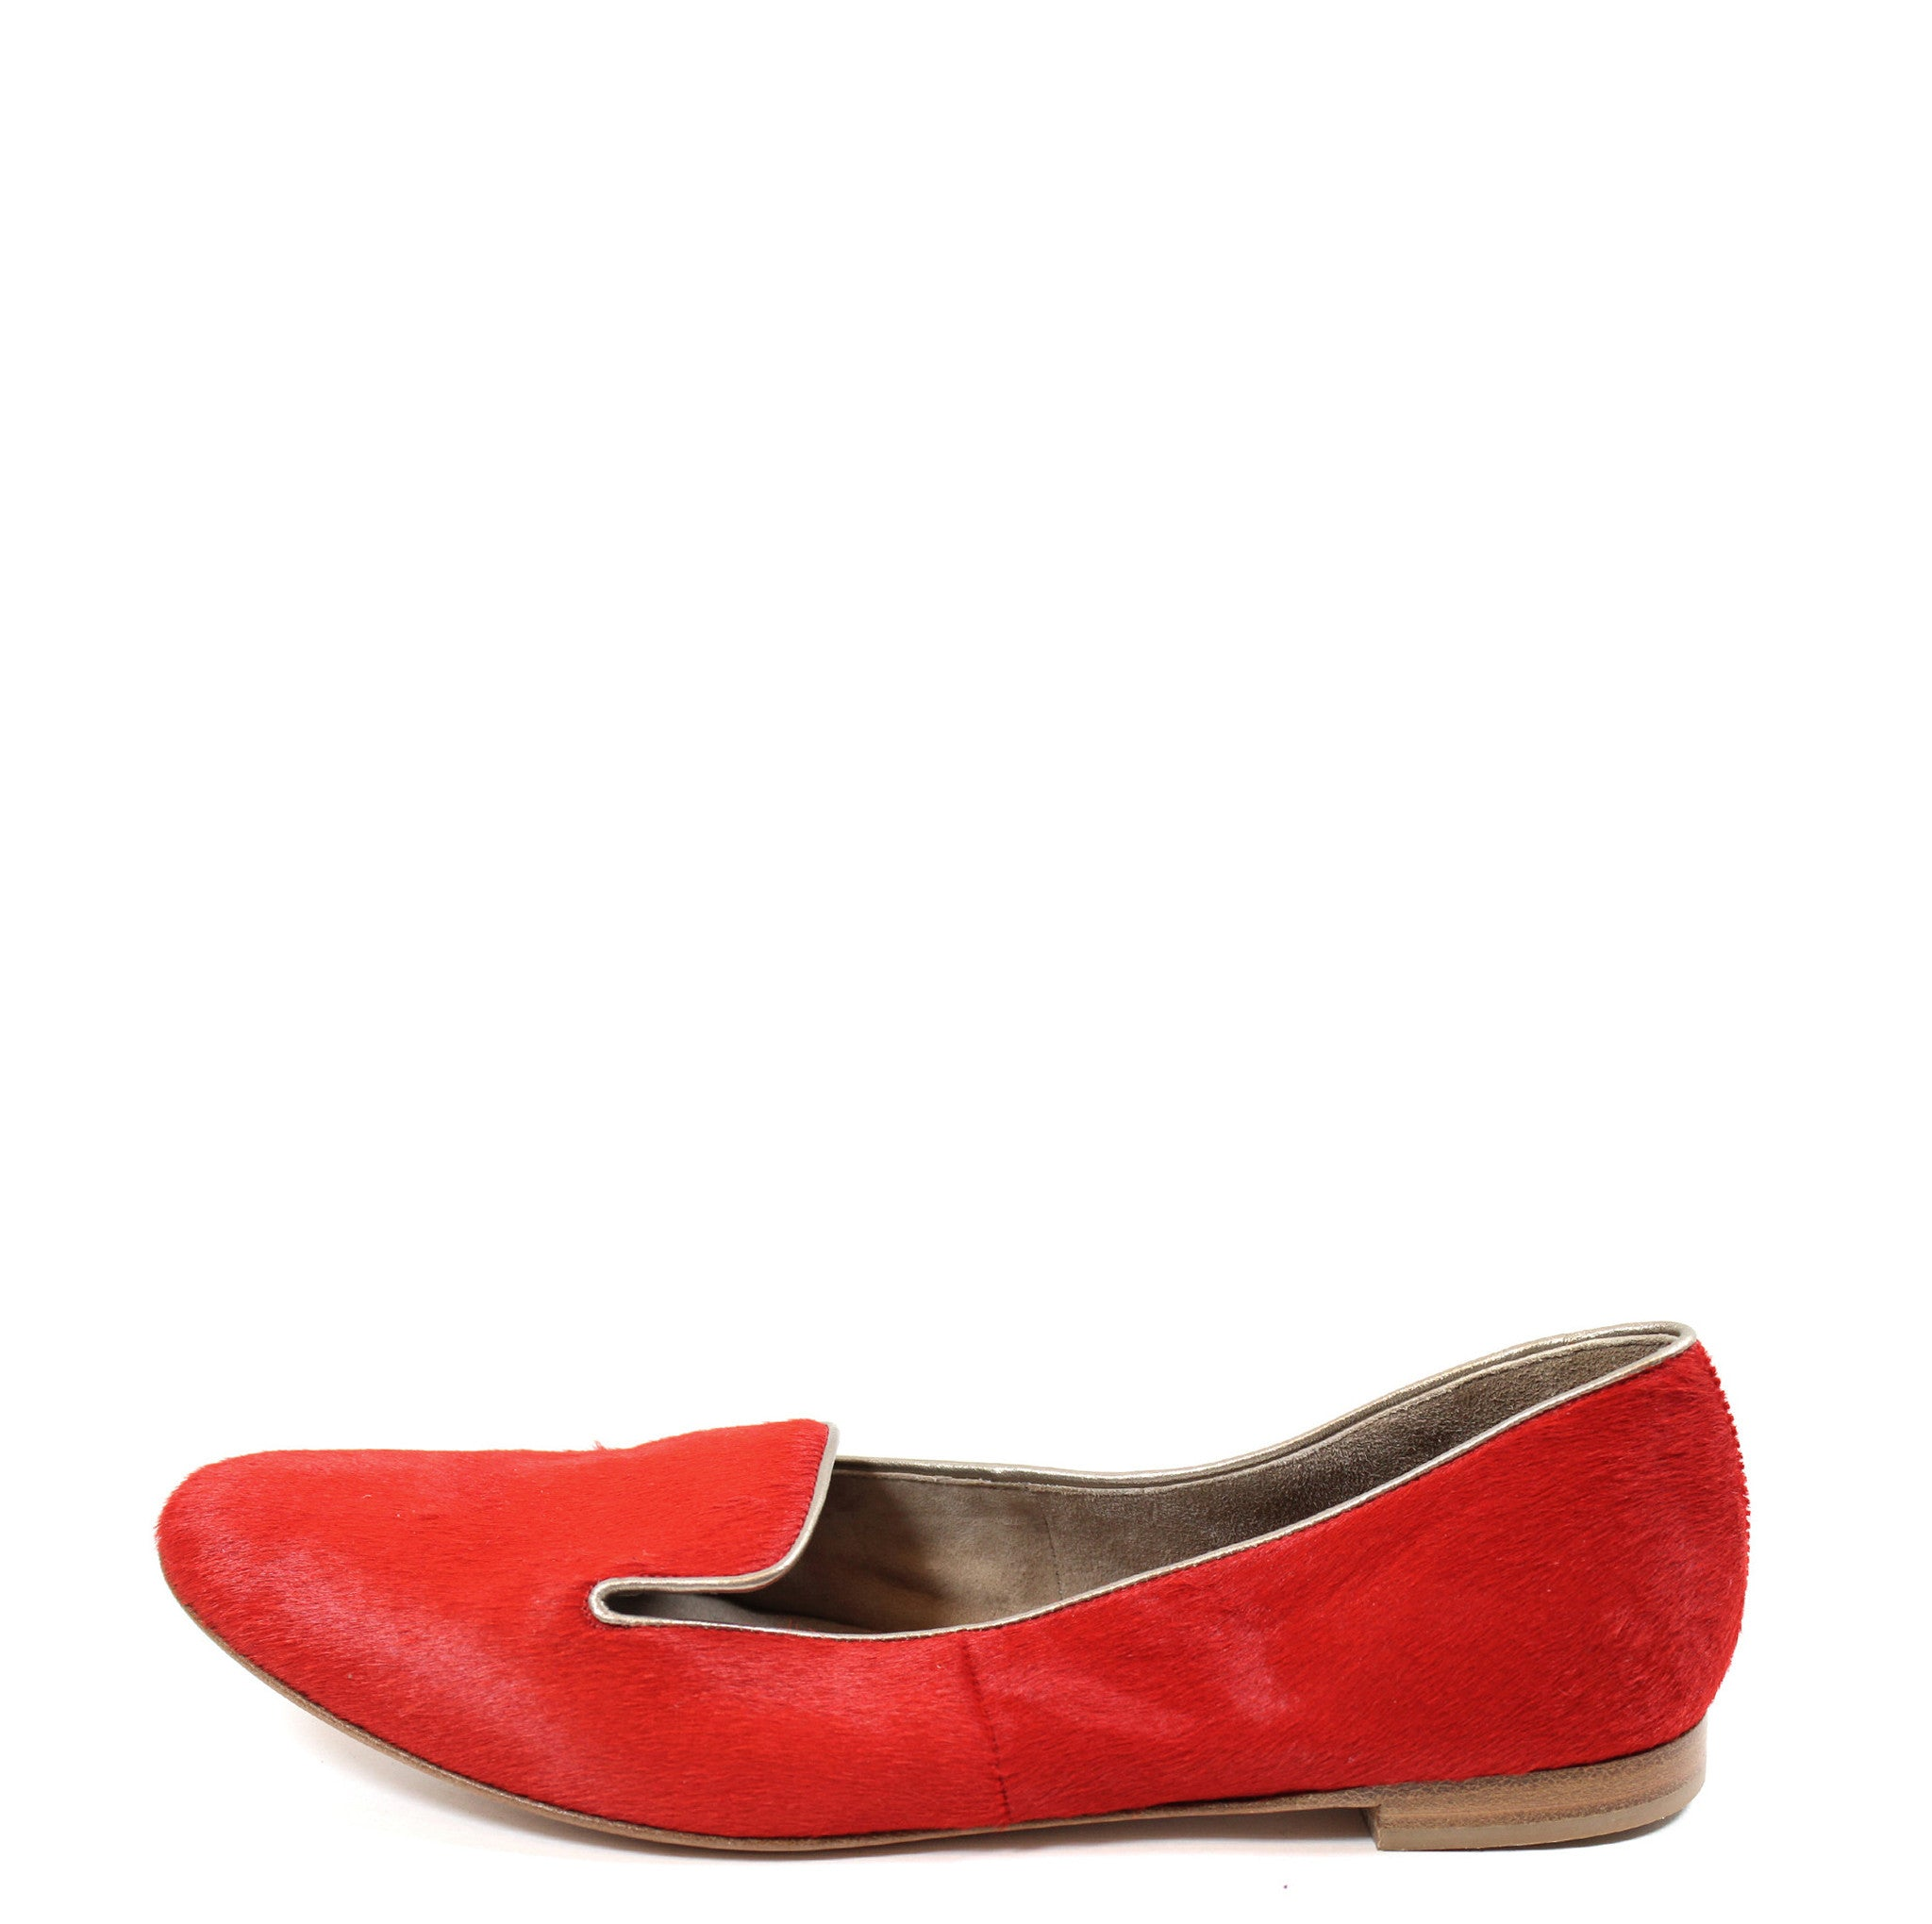 Barneys New York CO-OP Red Calf Hair Loafers (Size 38.5)